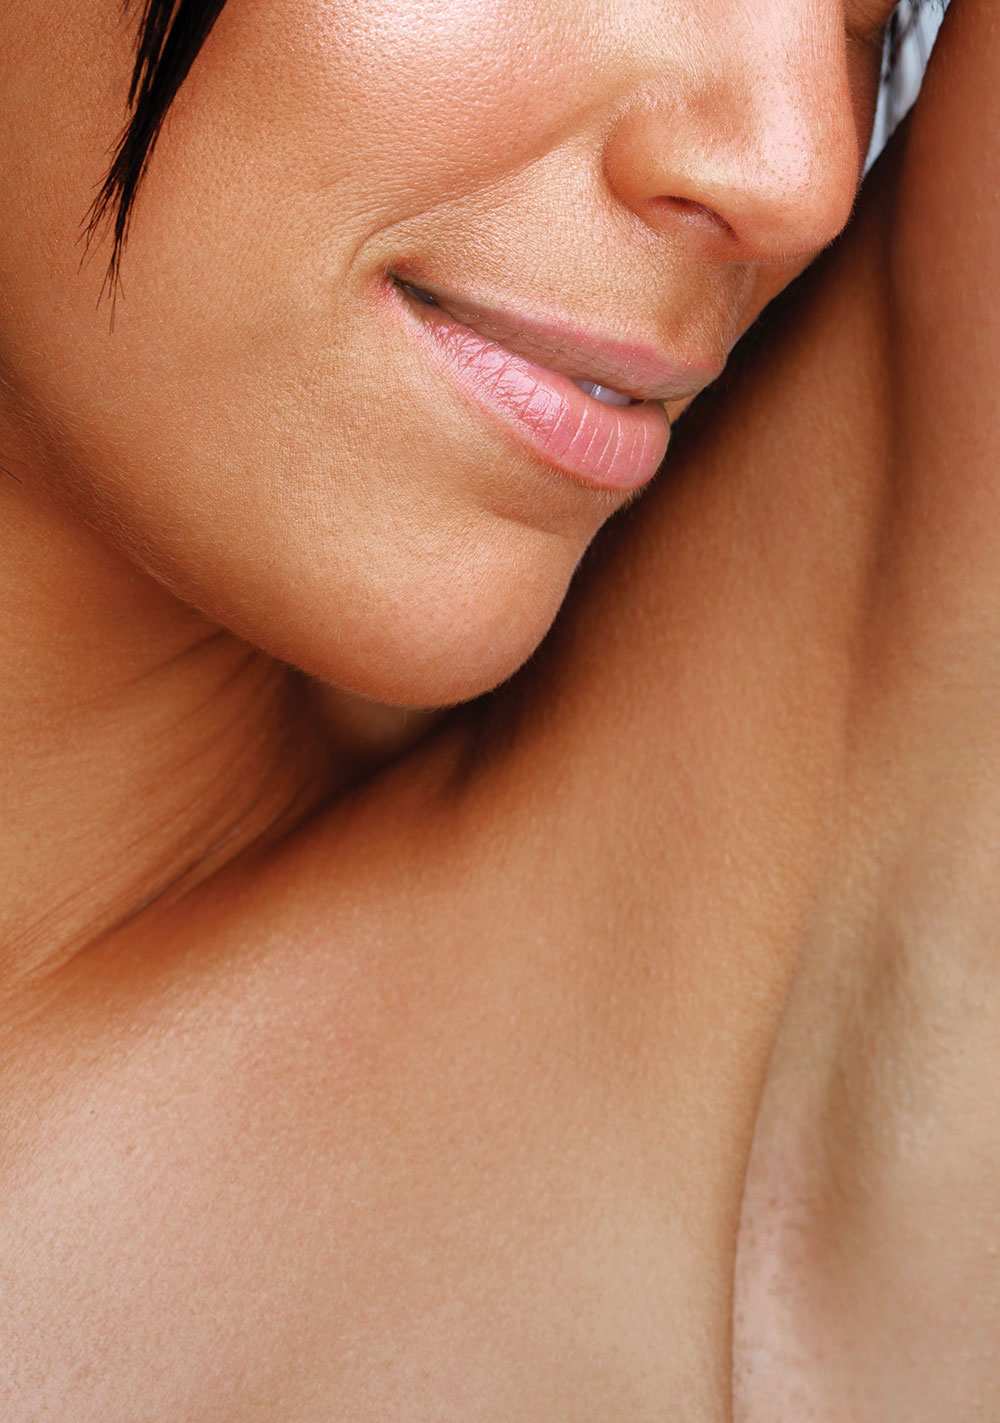 closeup of a woman's armpit, neck, lower face — healthcare marketing print work